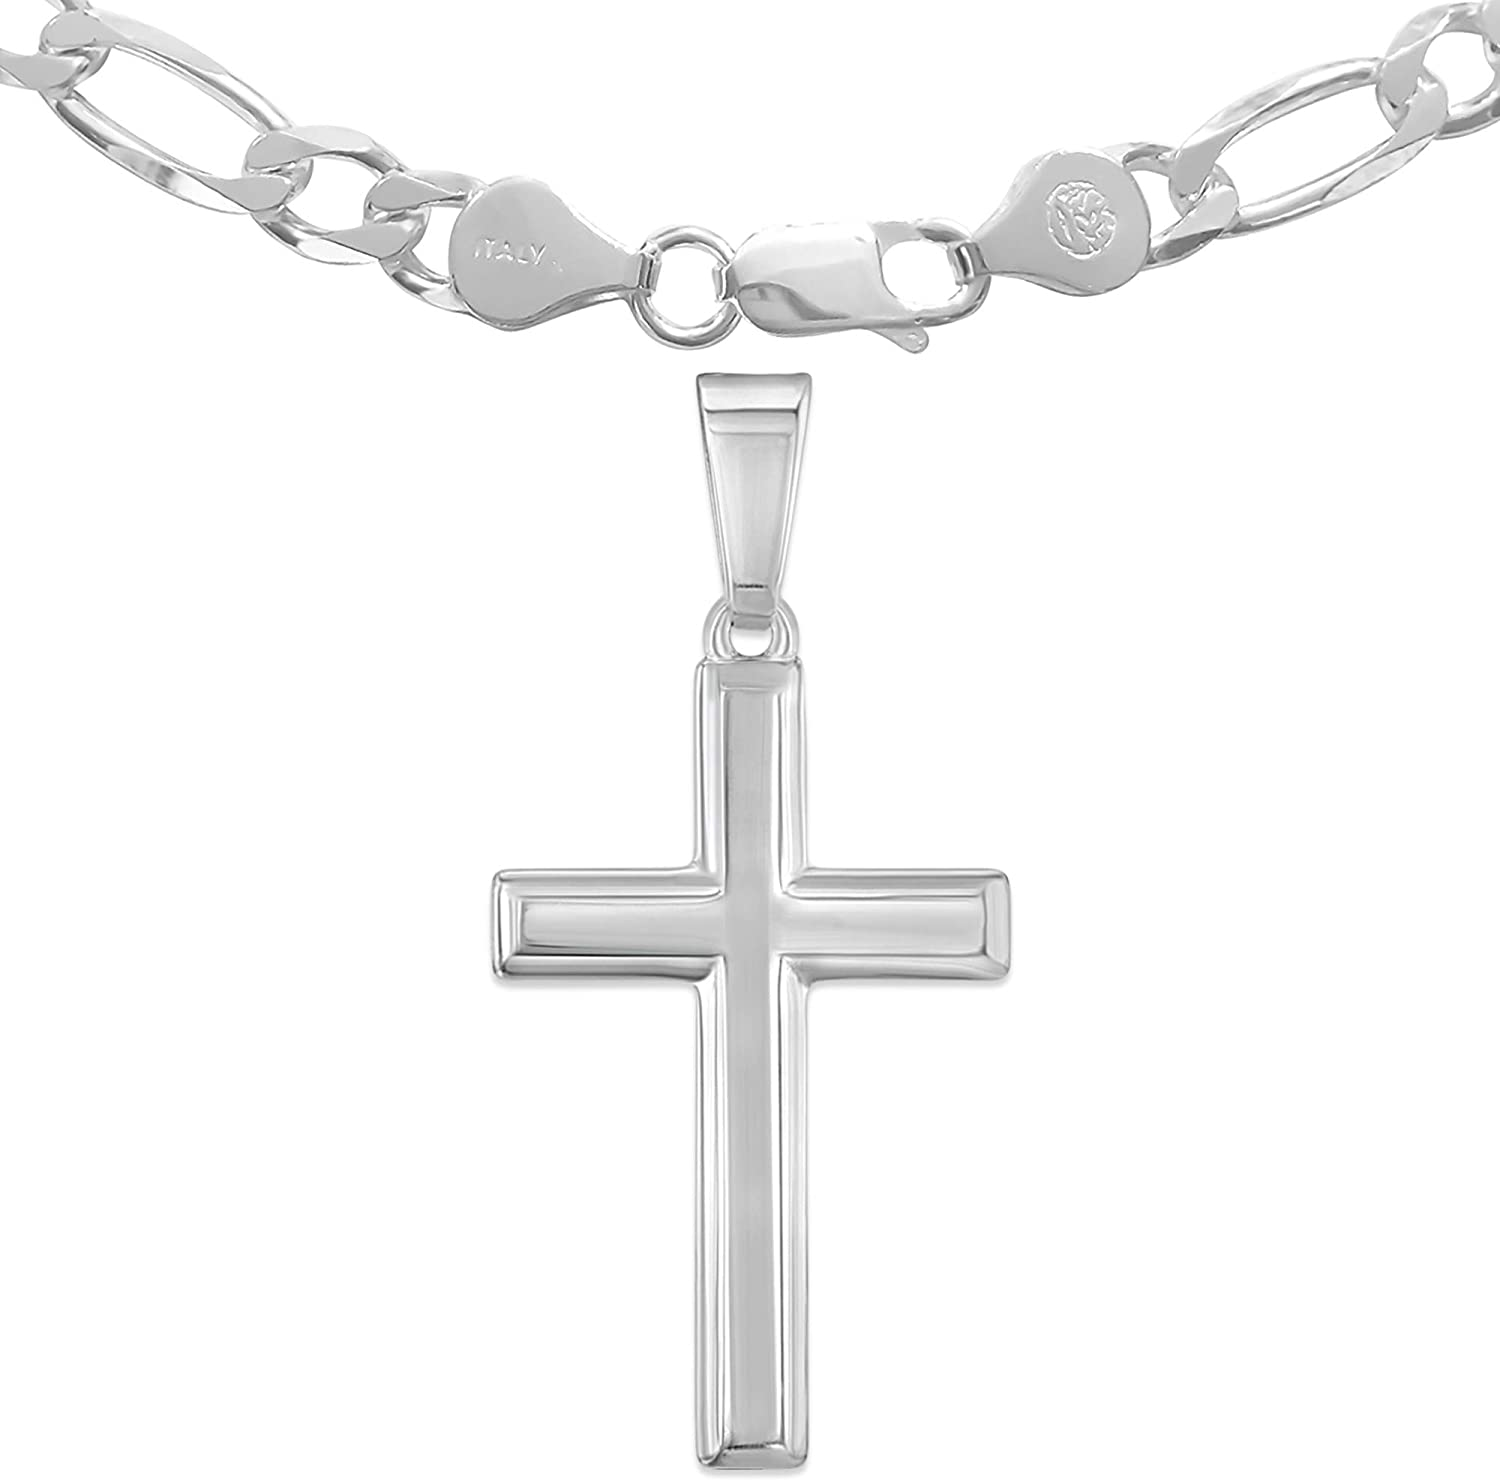 Mens Heavy Solid STERLING SILVER Chain Necklace Bracelet And Crucifix Mens Jewelry Cross Pendant Gift For Him Vintage Figaro Italian Link